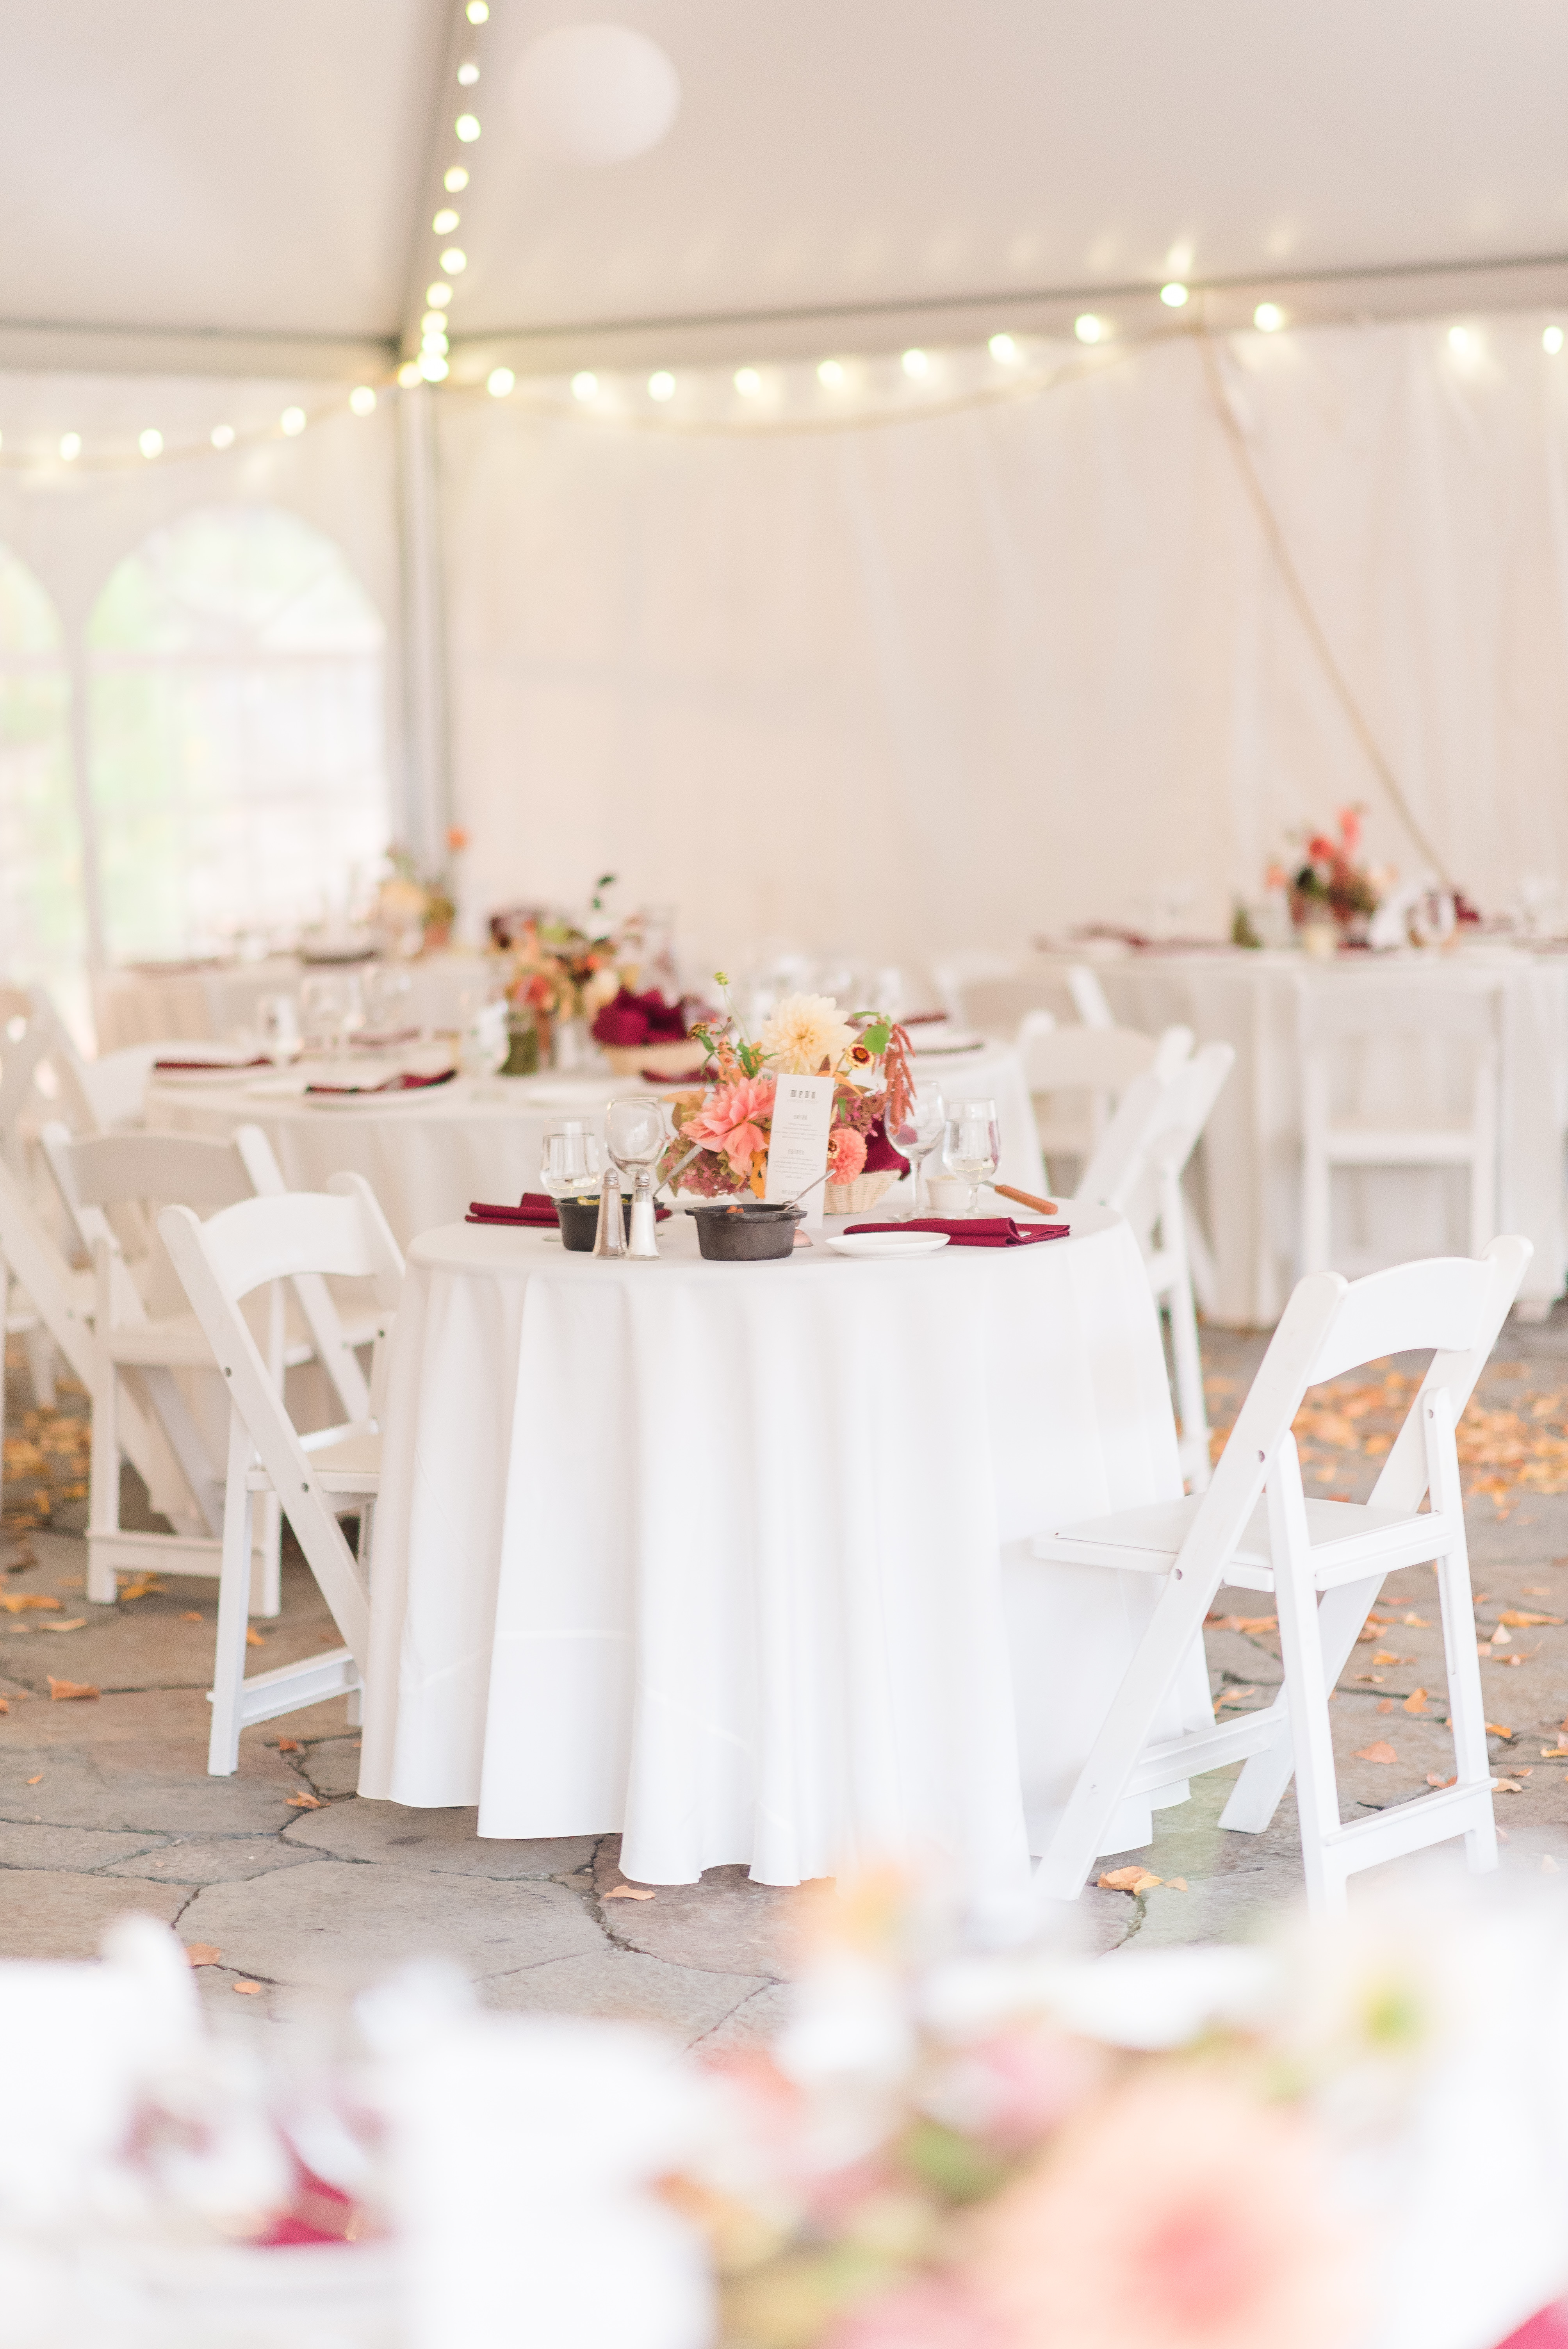 wedding reception in tent with white tables